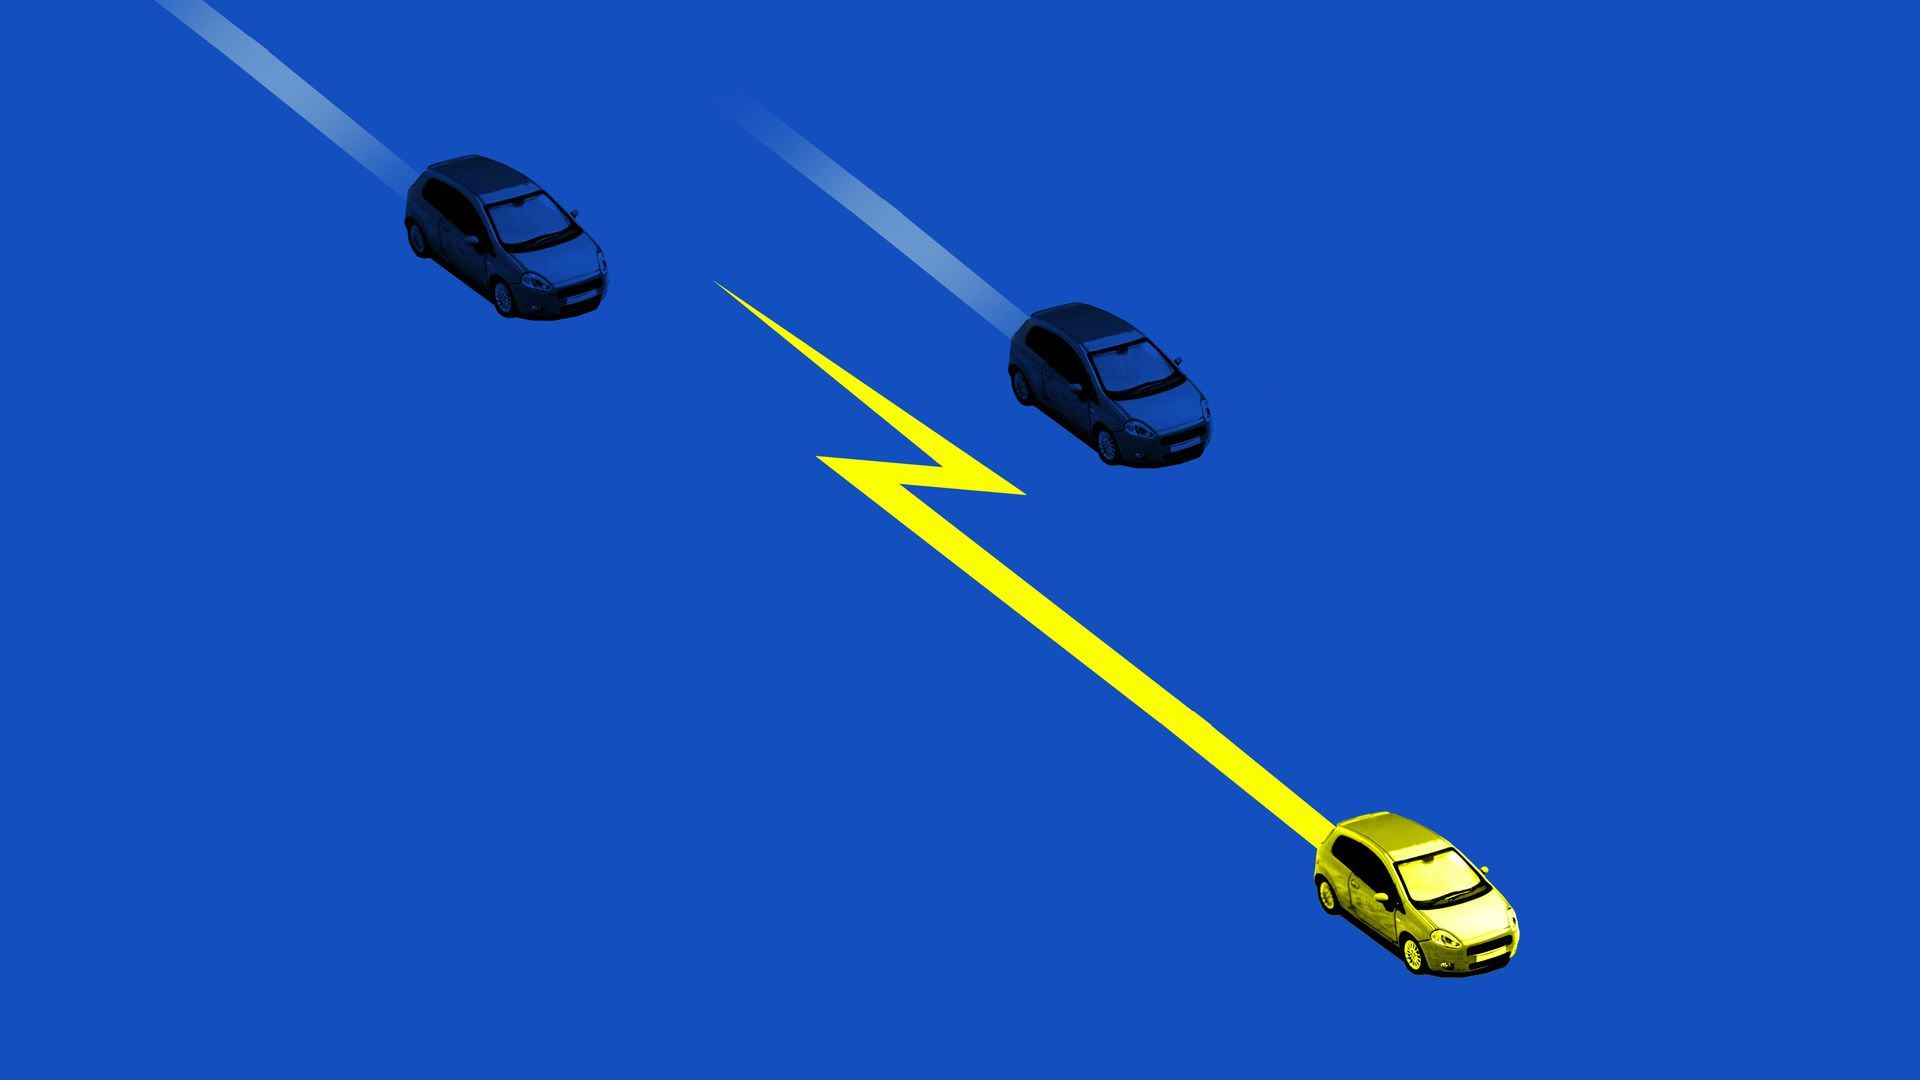 An illustration of an electronic vehicle flying past other cars.